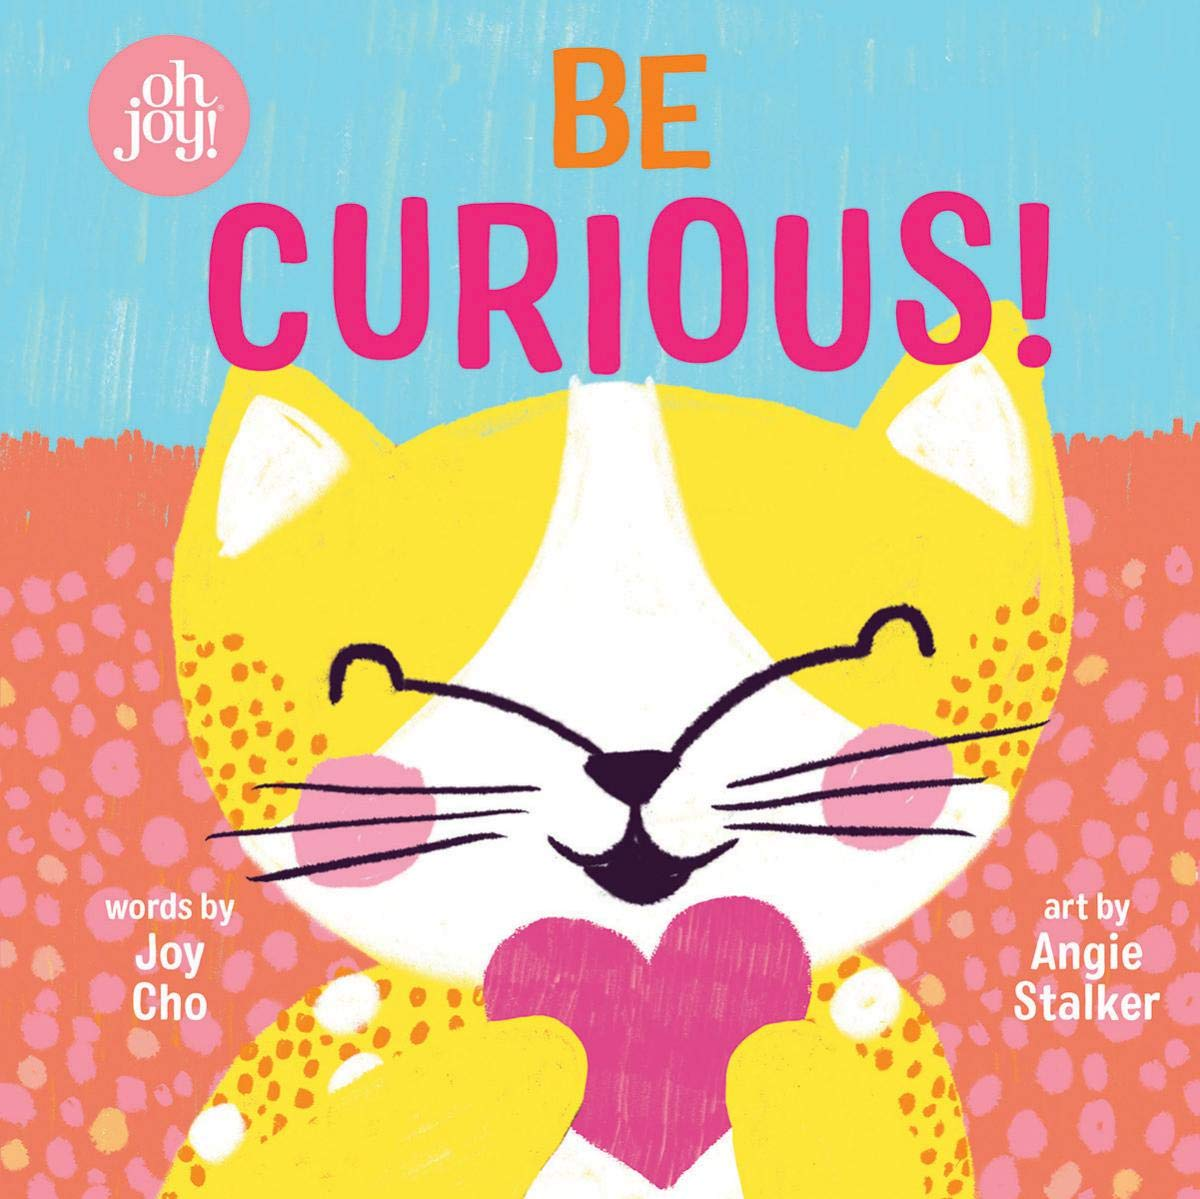 Be Curious! by Joy Cho